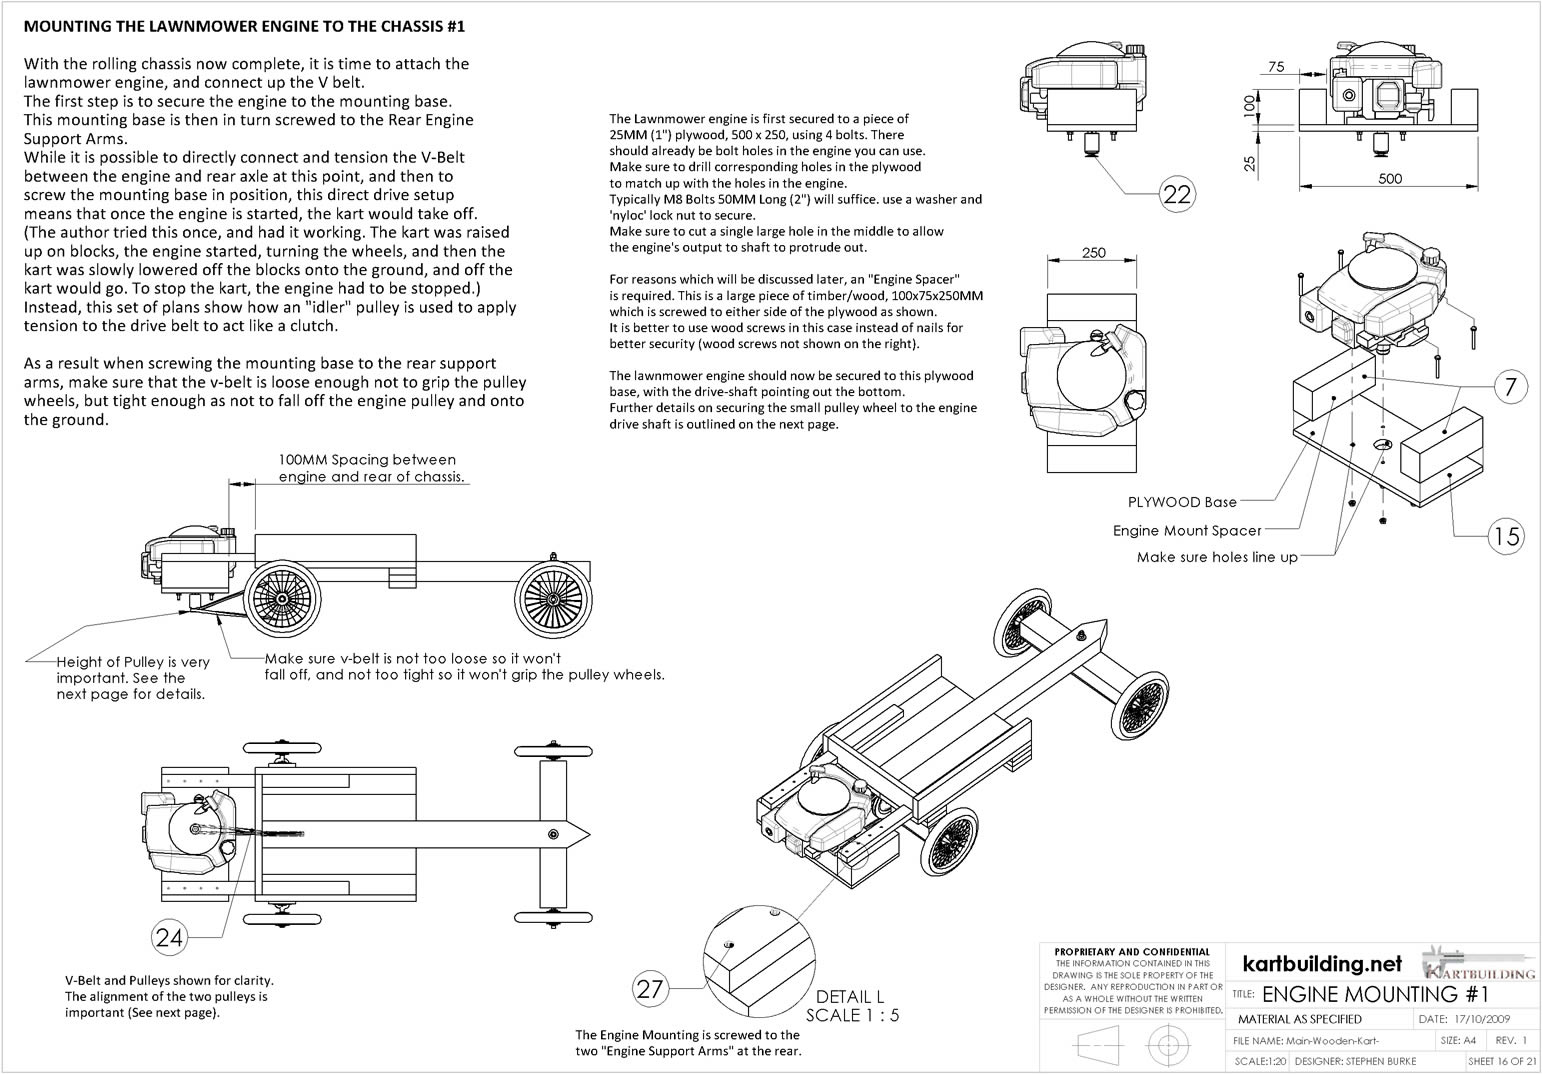 665771 1995 Jeep Grand Cherokee Laredo Radio Wiring Diagram additionally 69 Roadrunner Wiring Diagram For Horn moreover 1969 Mercury Cyclone Wiring Diagram furthermore F150 Carburetor Diagram in addition Search. on nascar wiring diagram